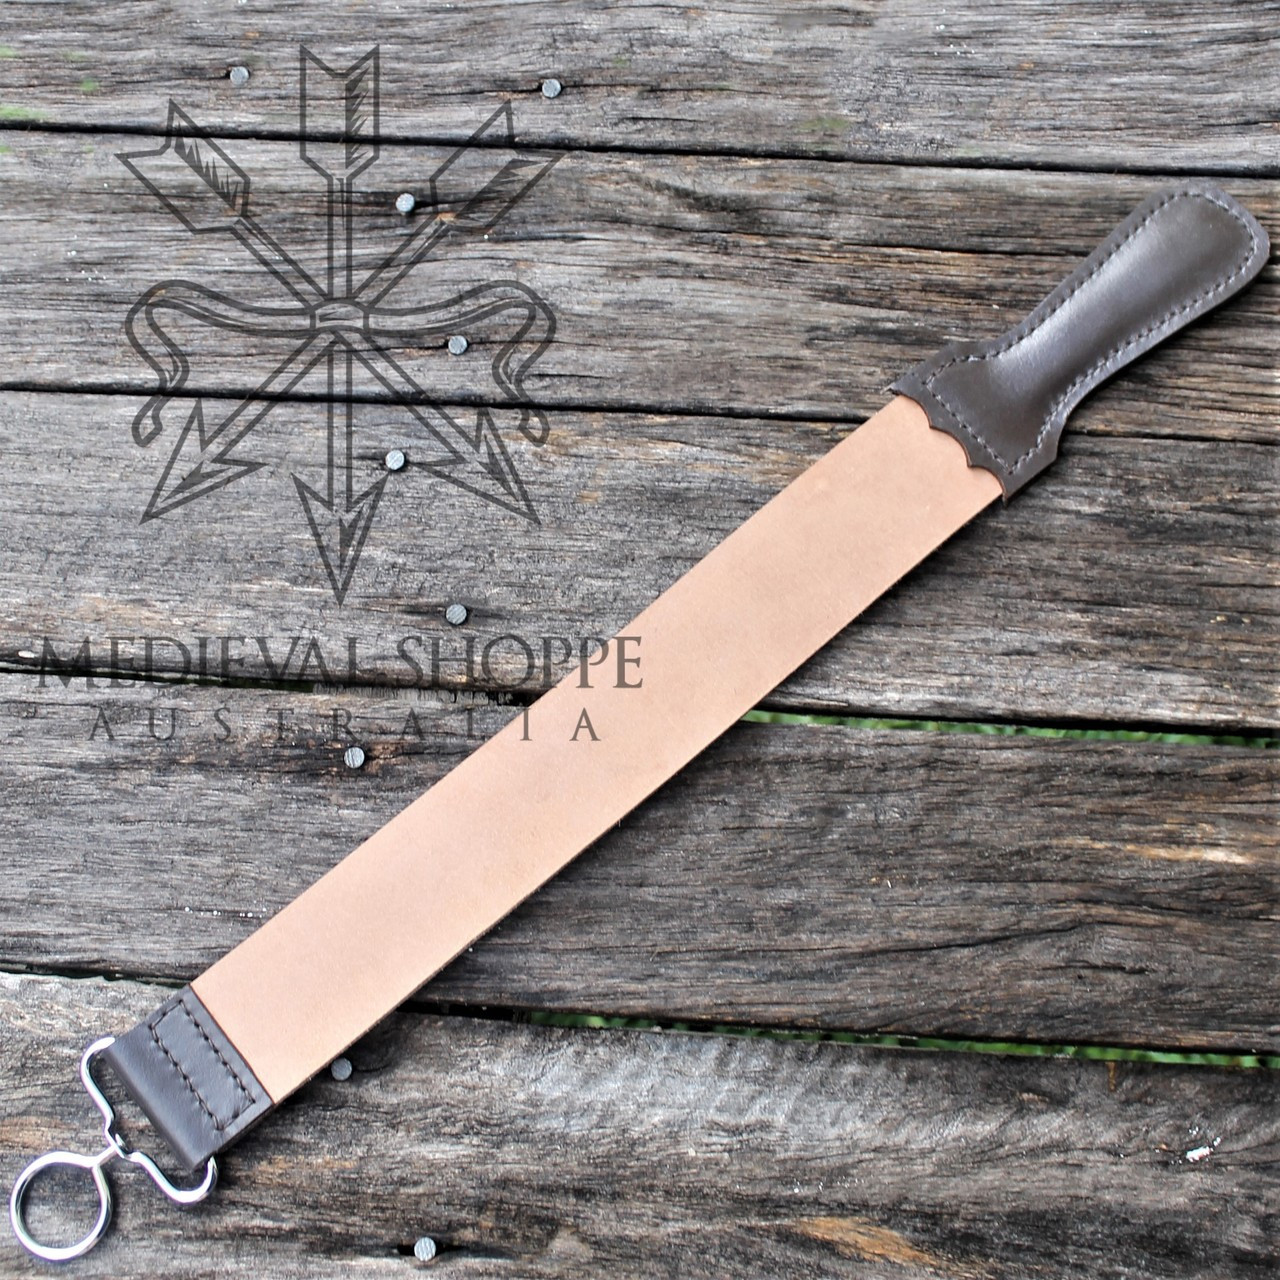 Genuine Leather Sharpening and Honing Strop 19.75 inches